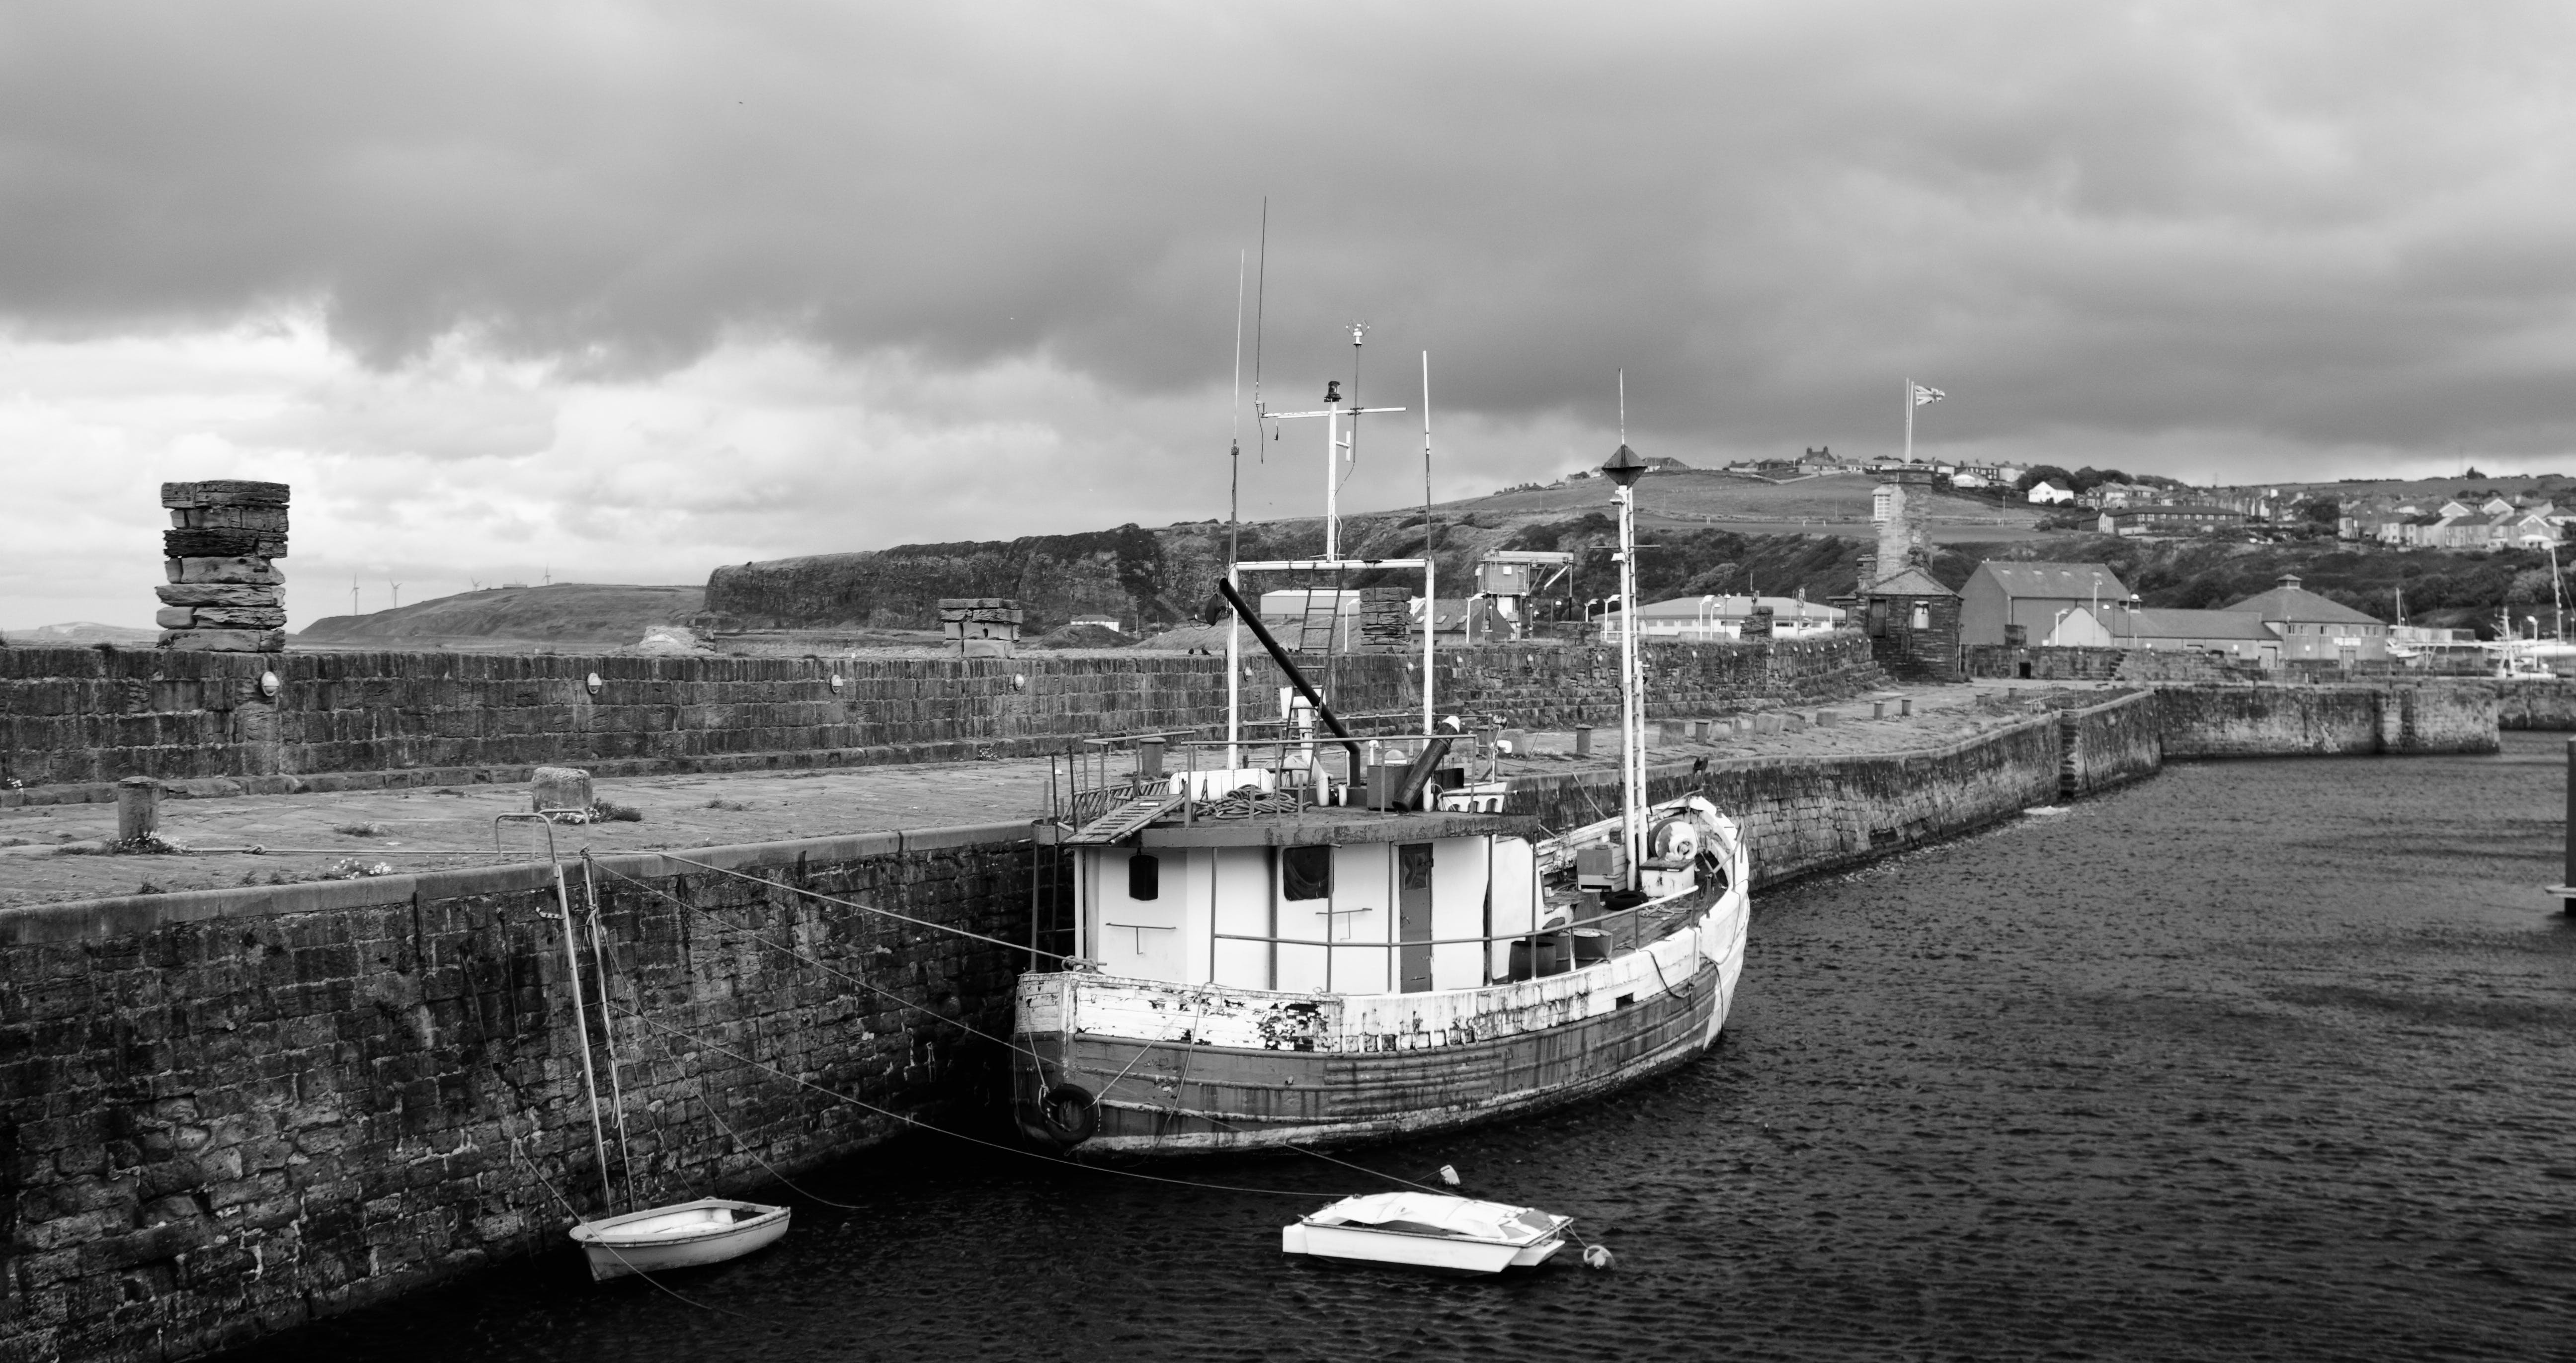 Grayscale Photography of Boat on Dockj